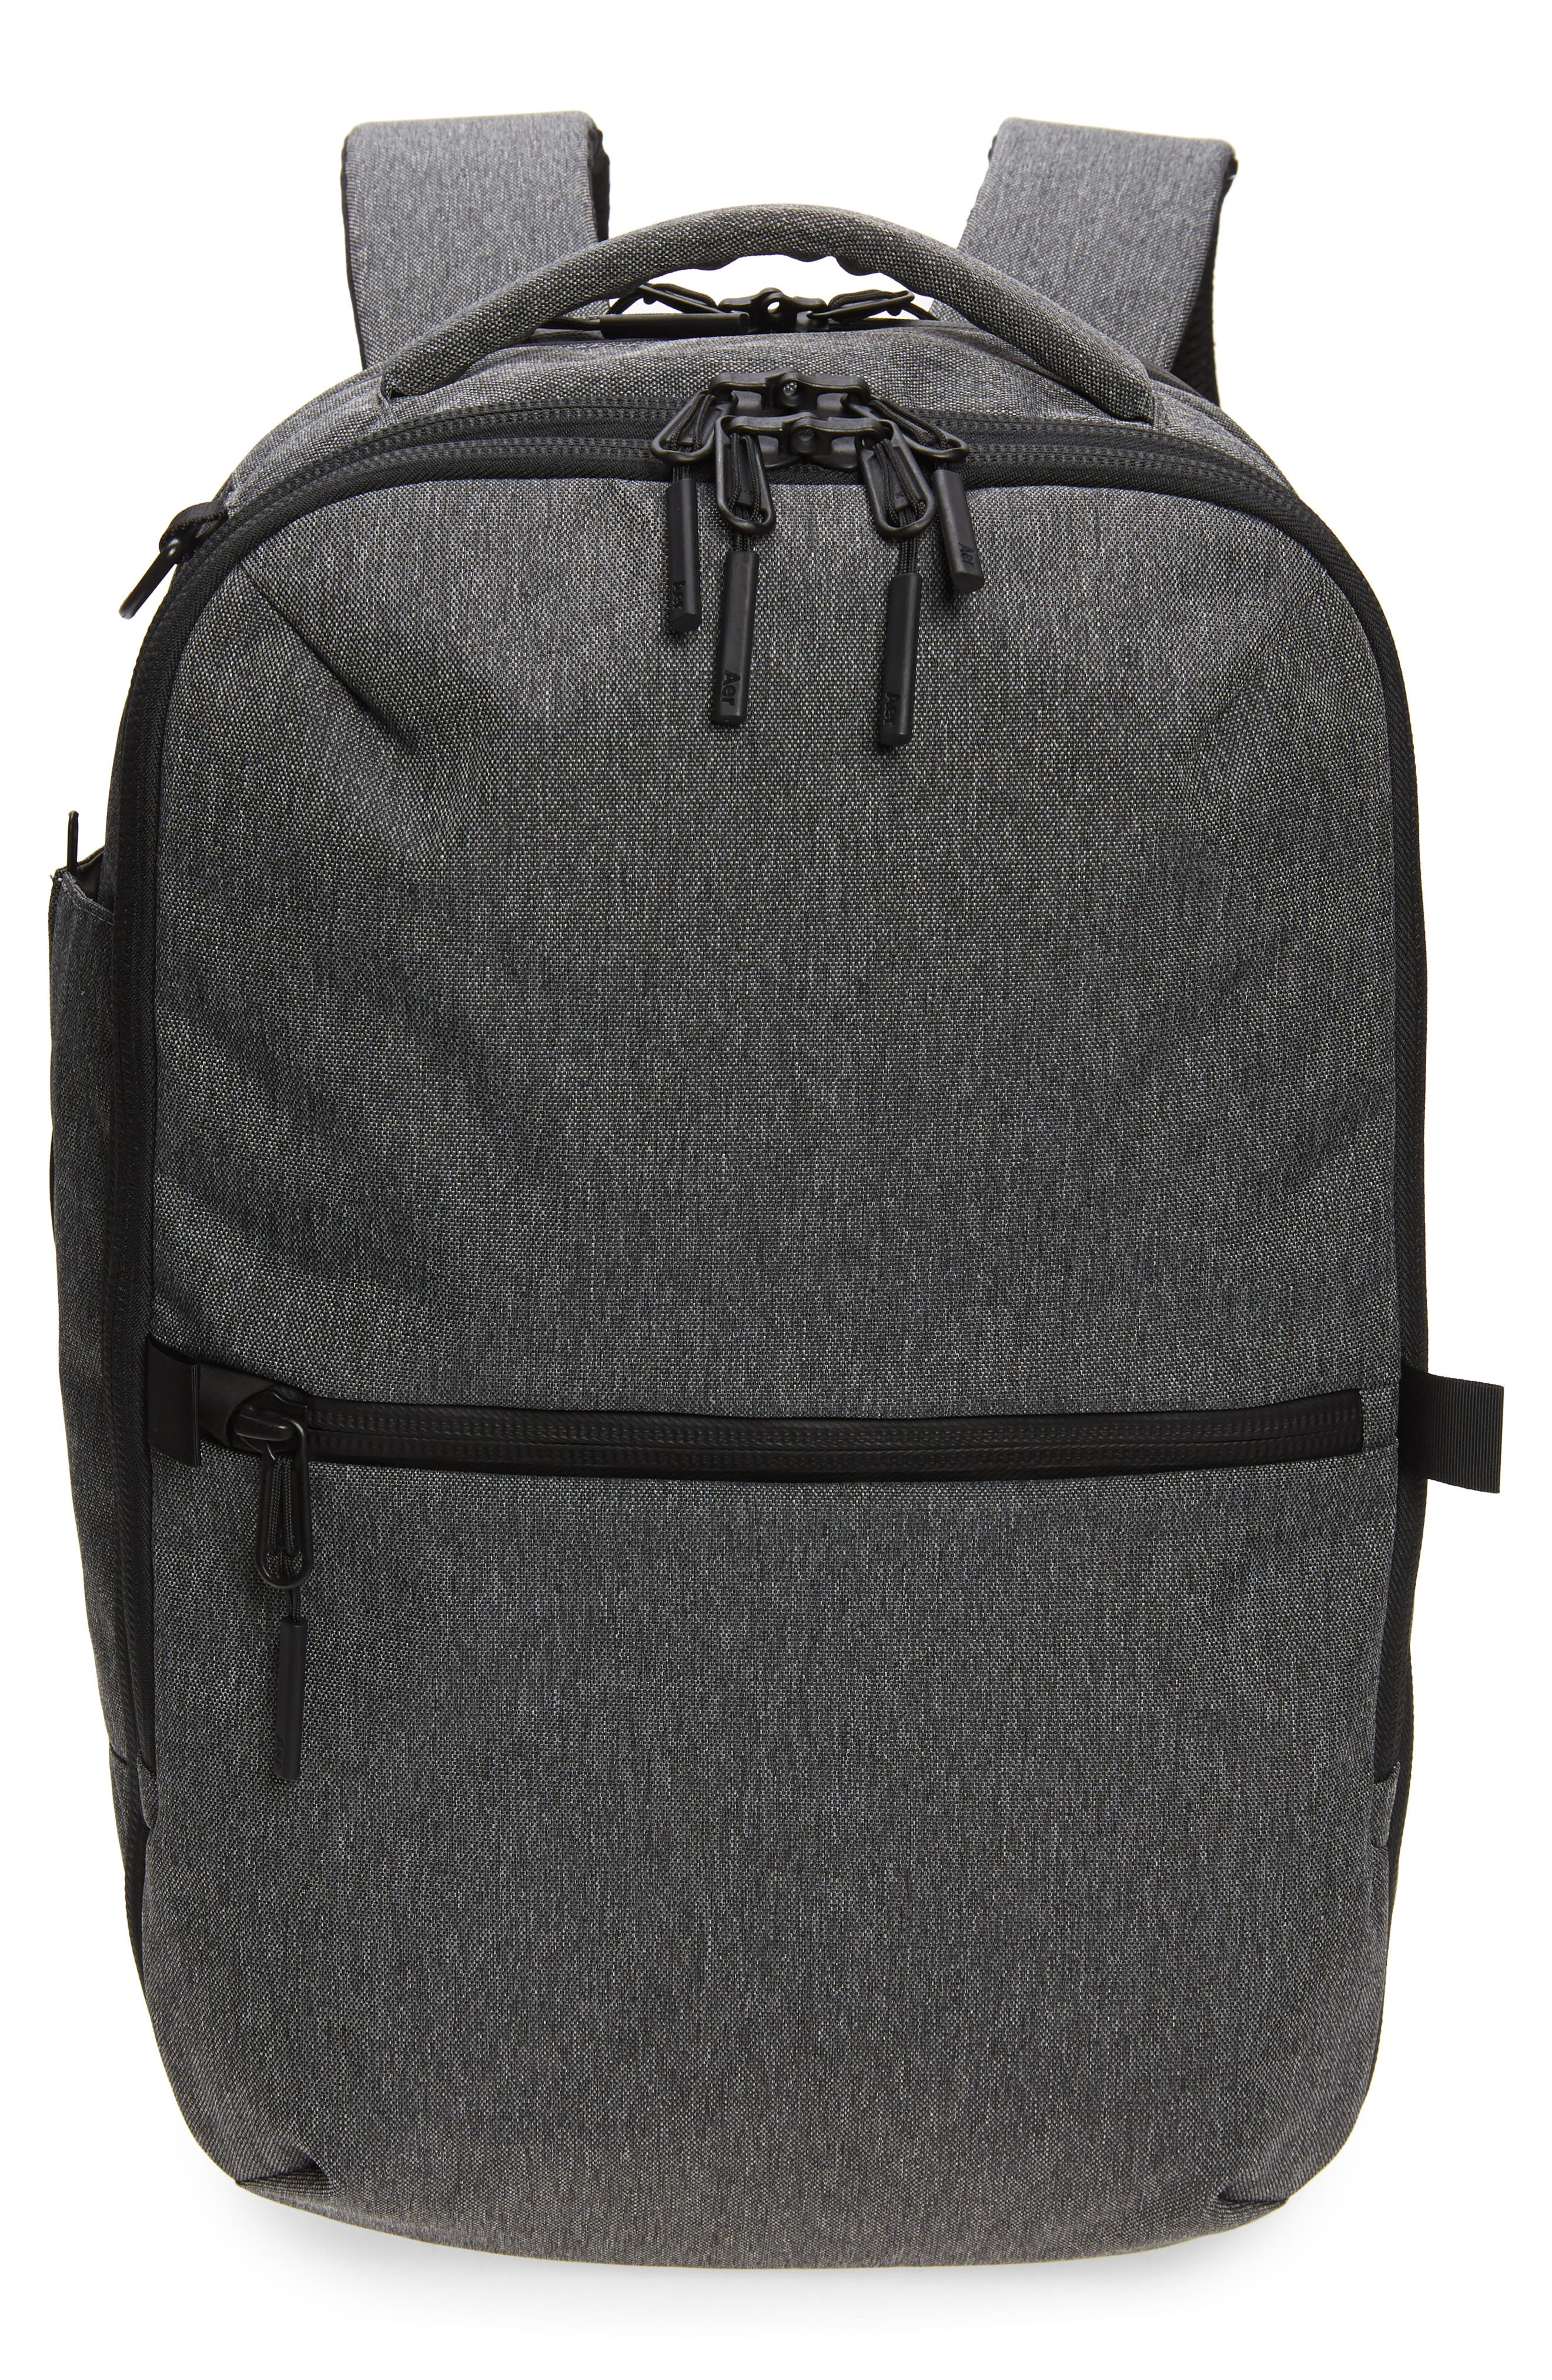 Travel Pack 2 Small Backpack